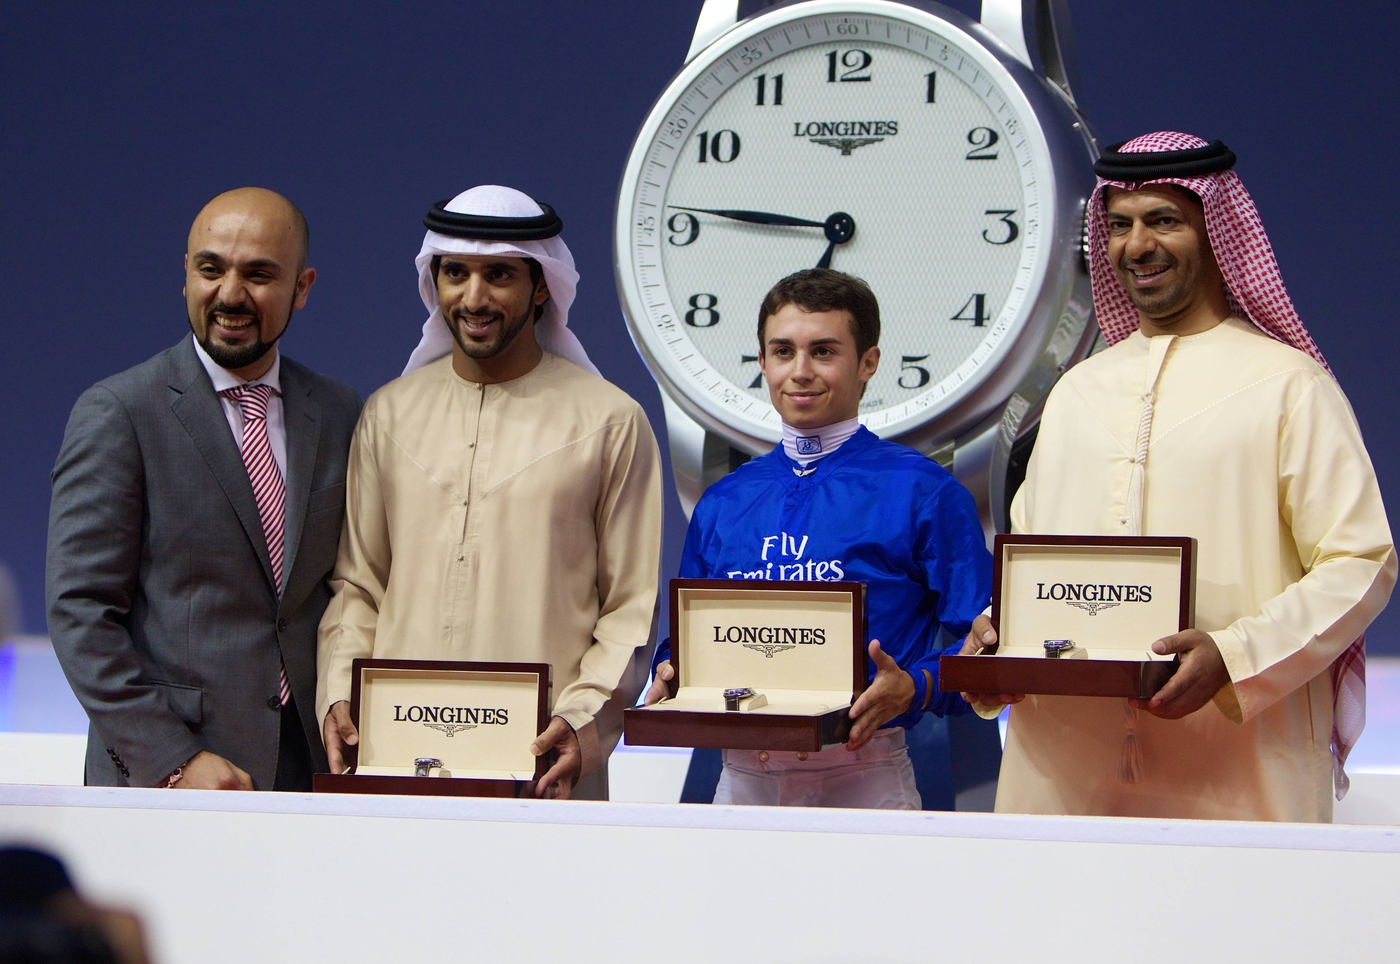 Longines Flat Racing Event: Elegance met performance at the Dubai World Cup 2011 1